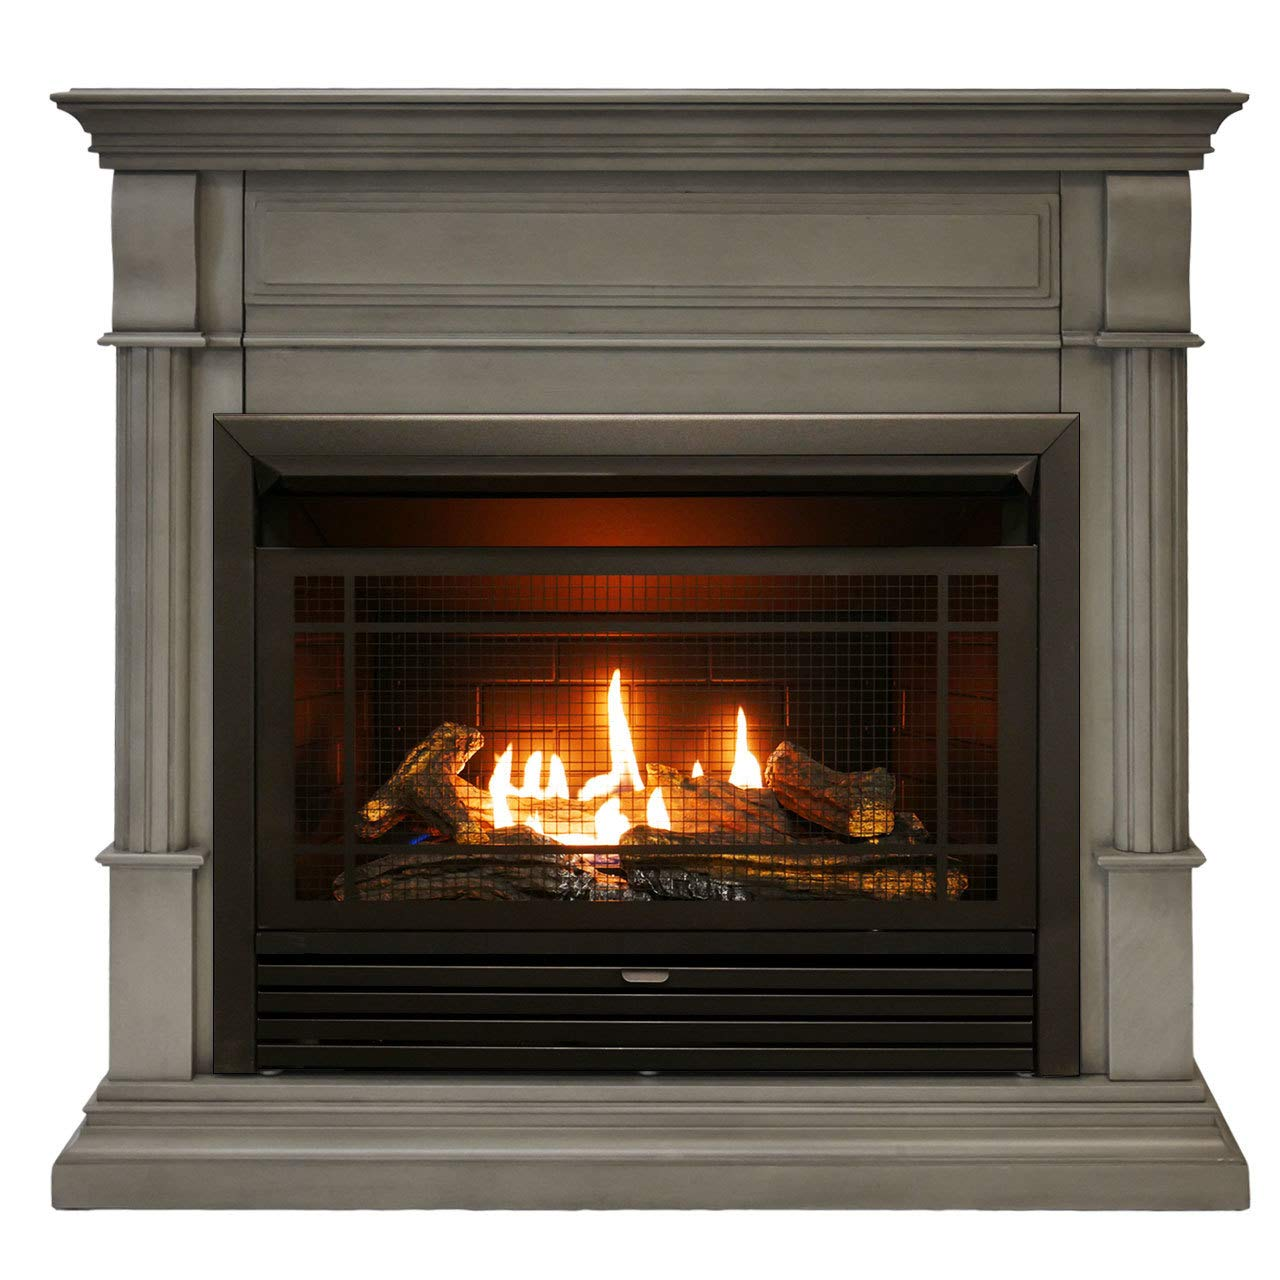 Duluth Forge DFS-300R-2GR Dual Fuel Ventless Gas Fireplace-26,000 BTU, Remote Control, Slate Gray Finish, Grey by Duluth Forge